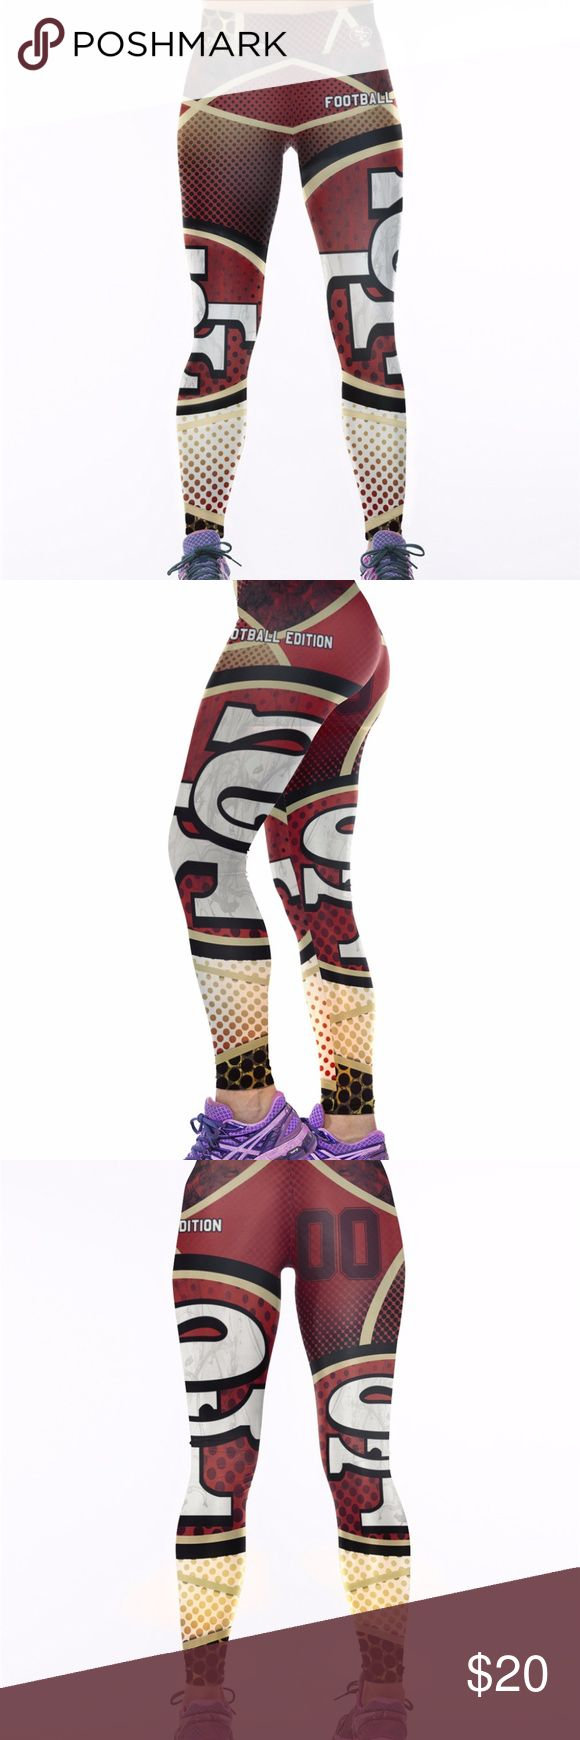 San Francisco 49ers Leggings Lightweight soft- quick dry breathable fabric Suitable for any kind of workout, gym, yoga, Zumba, cycling, etc. or casual wear High-quality construction with 6-thread double lock stitch seams Four-way Stretch Material: 82% Polyester, 18% Spandex Pants Leggings